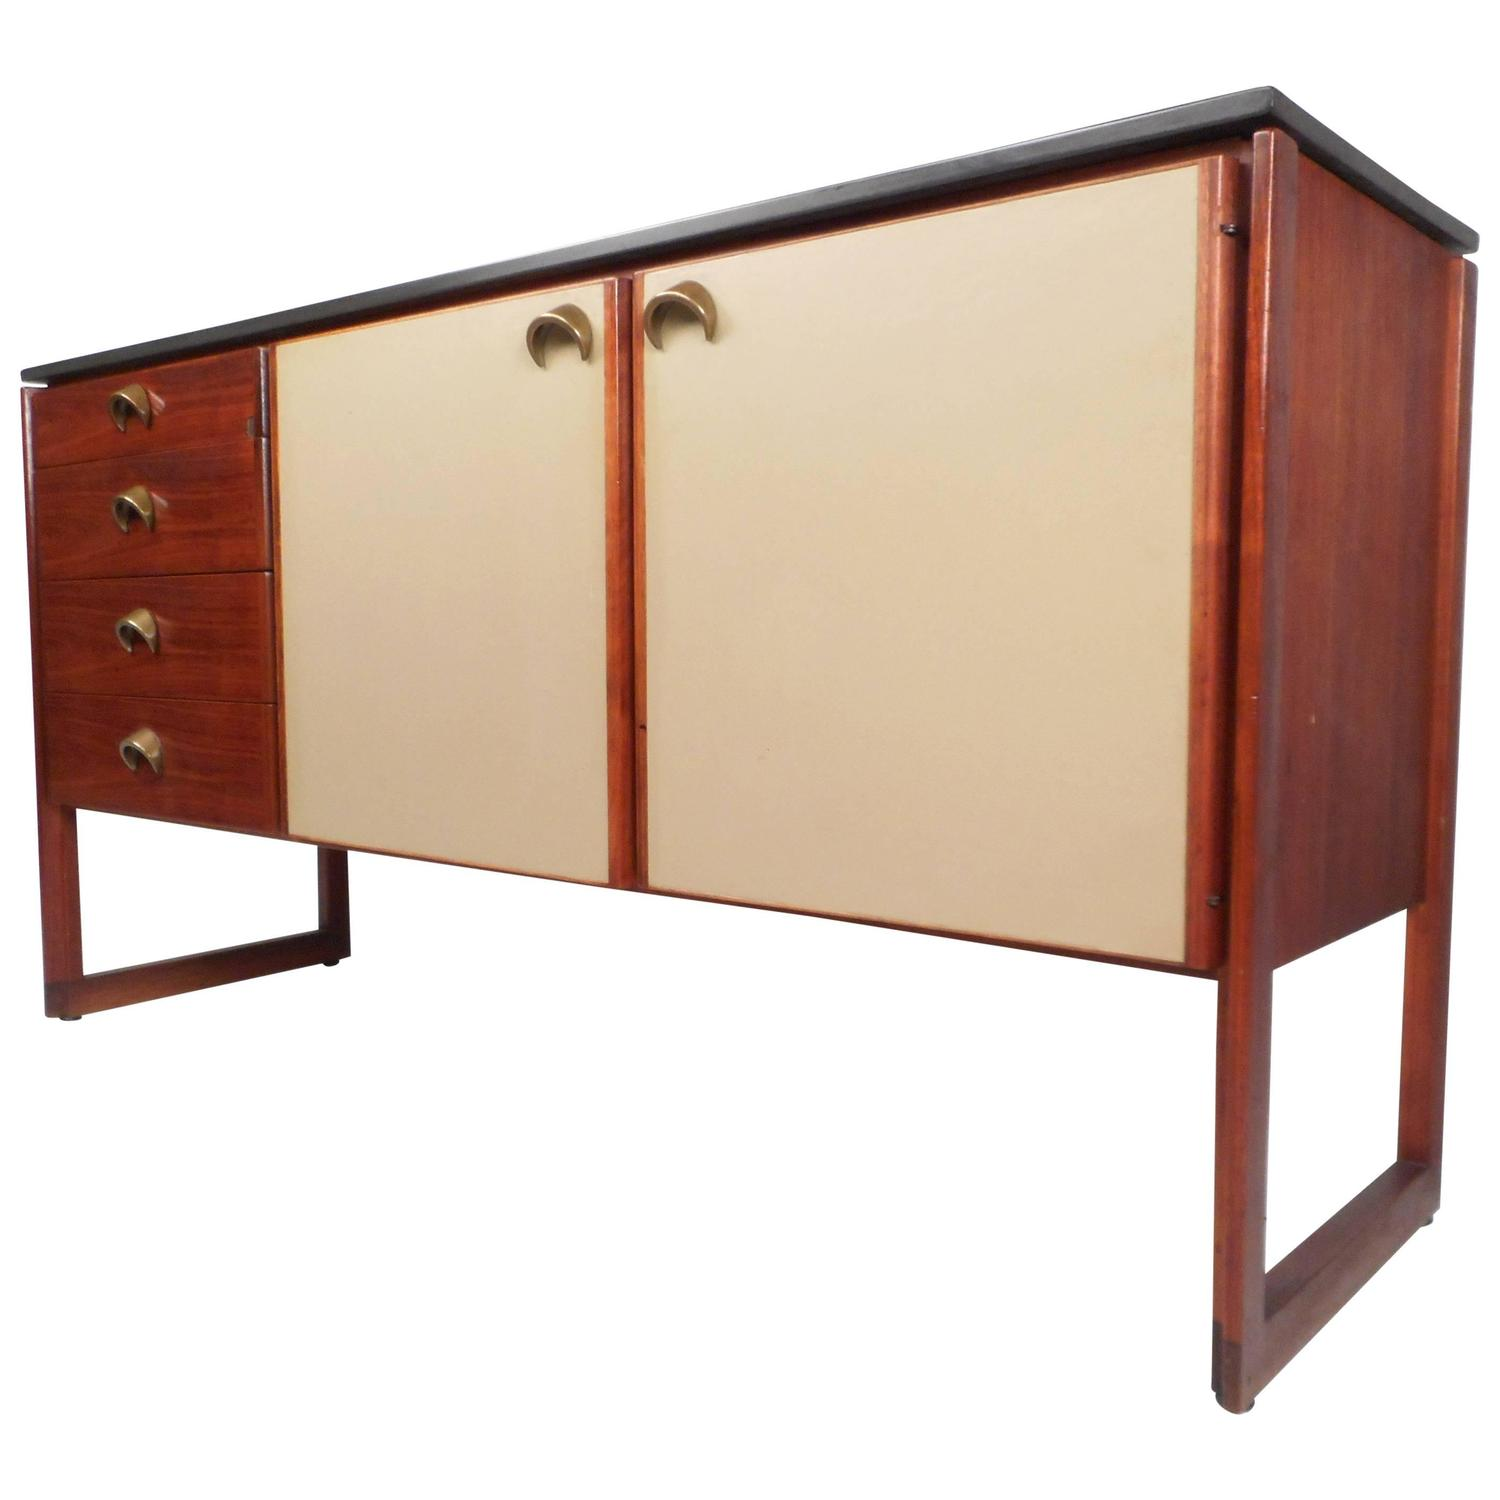 Entzückend Sideboard Modern Das Beste Von Mid-century By Jens Risom For Sale At